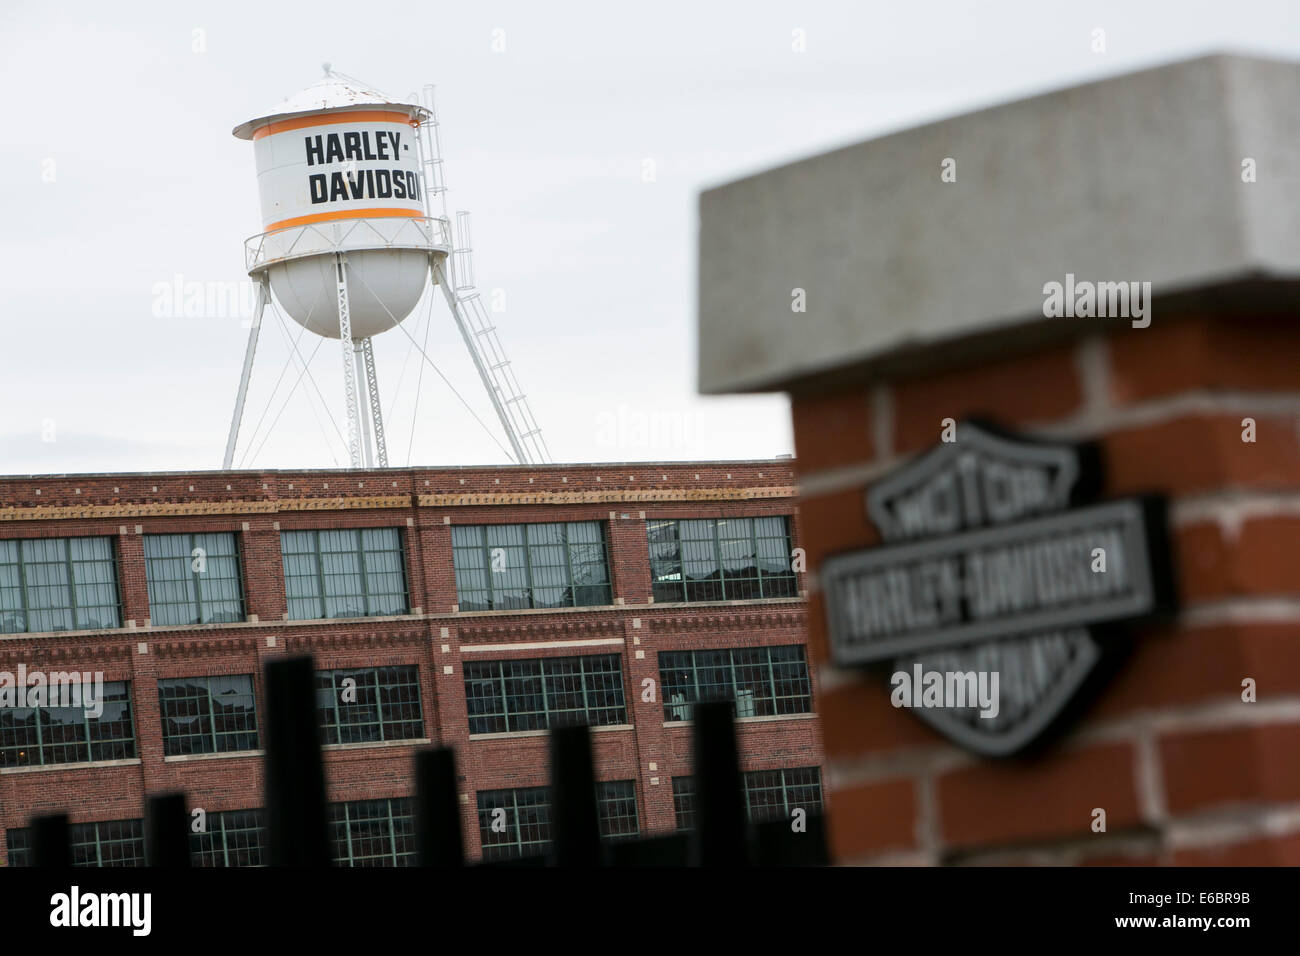 The headquarters of Harley-Davidson Inc., in Milwaukee, Wisconsin. - Stock Image